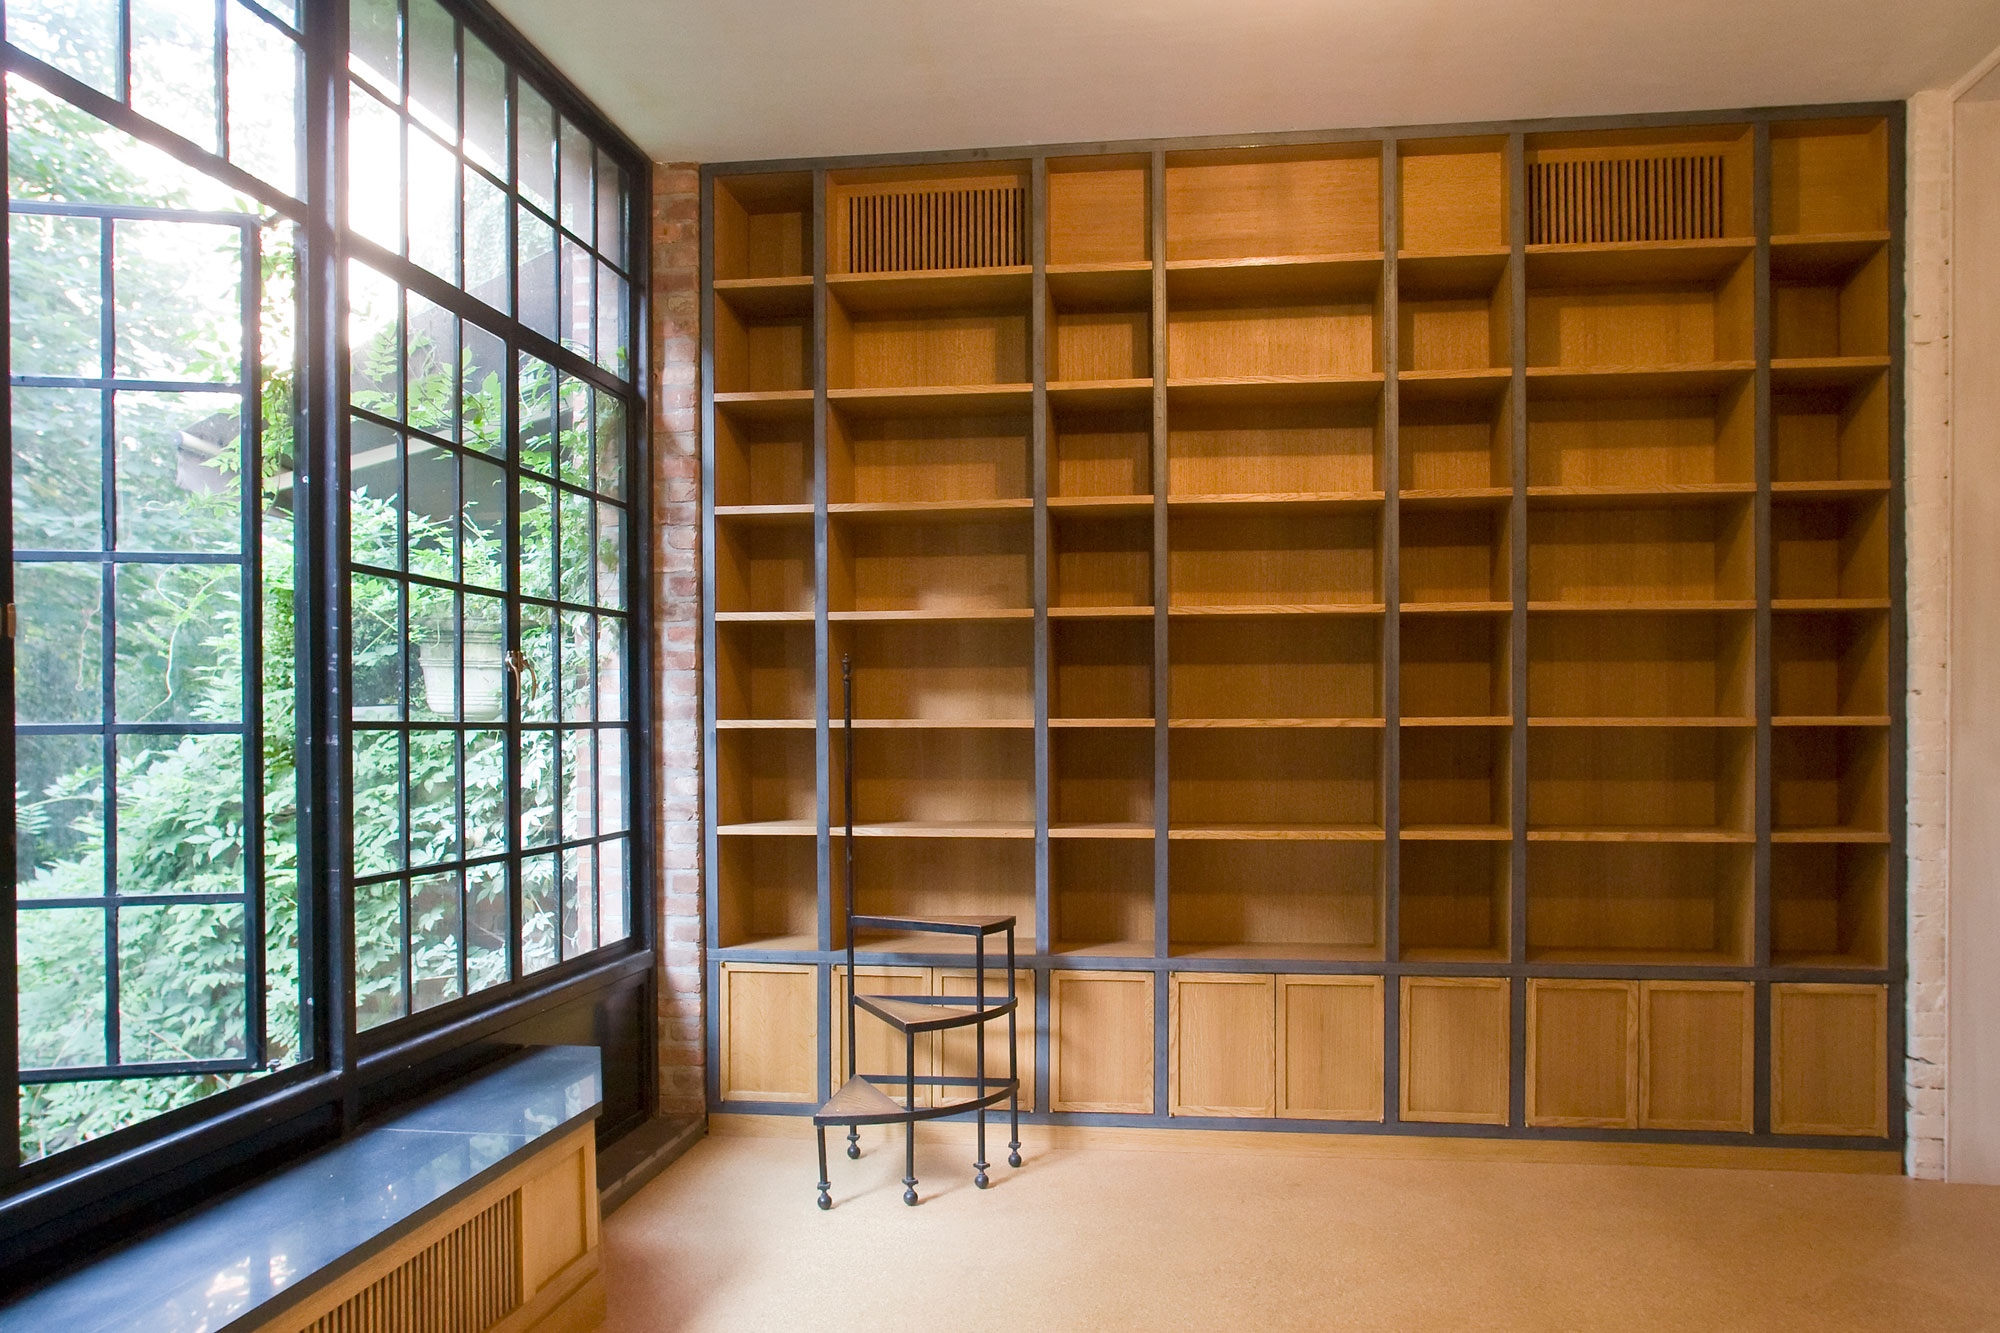 West Village Brownstone - Parlor Level Library